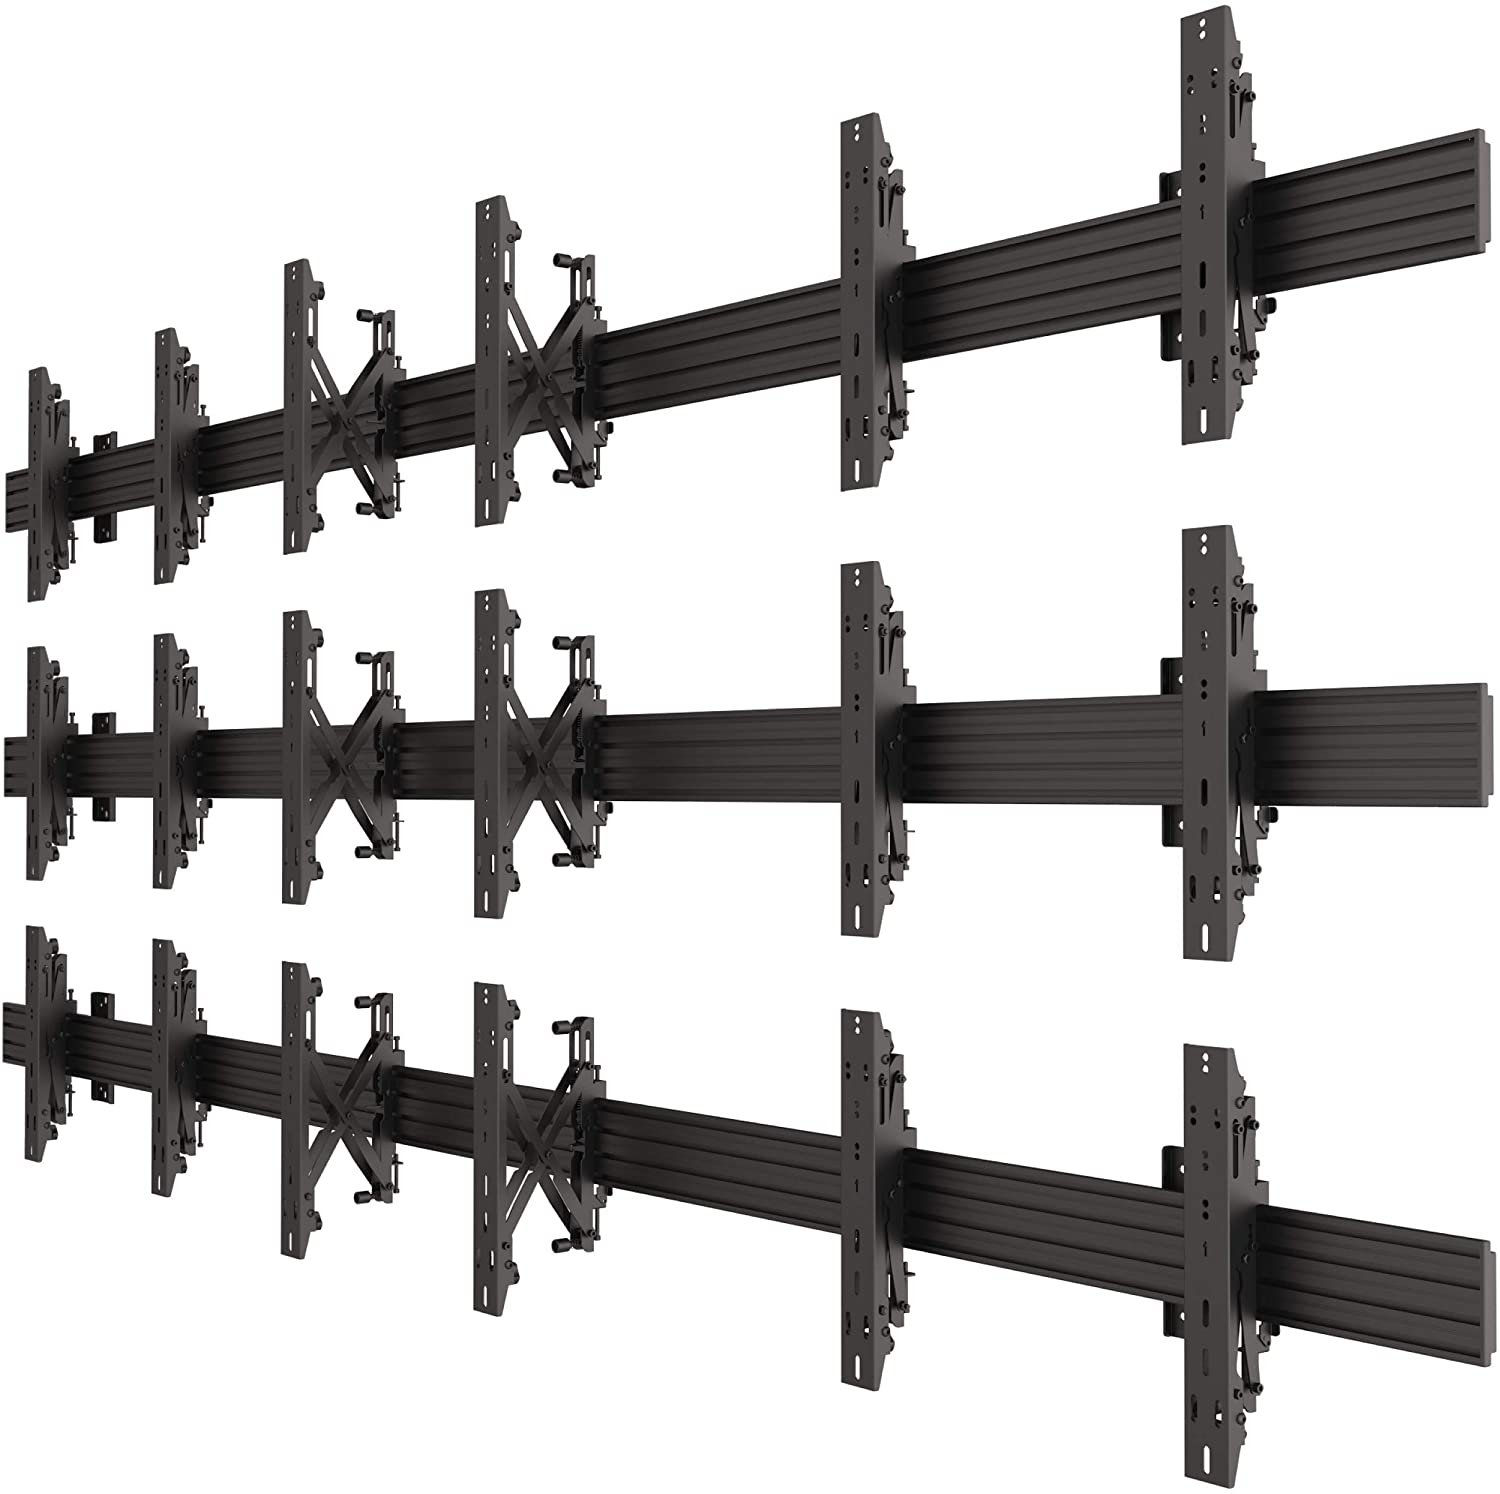 3x3 Video Wall Pop Out Mounting System Horizontal Rails Fixed Displays with with Micro Adjustment Arms Vesa Universal TV Television Monitors